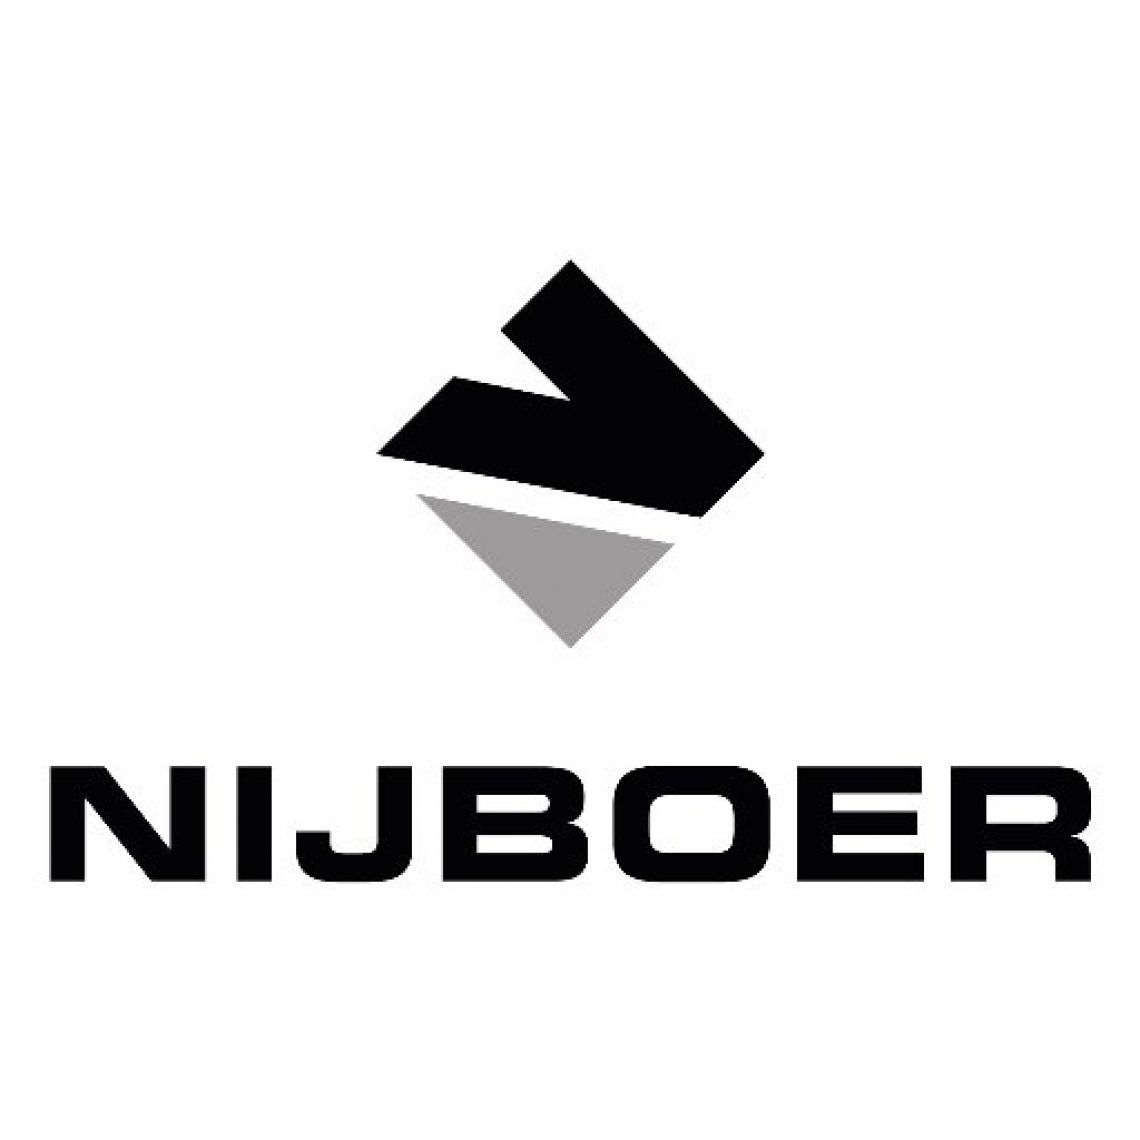 Nijboer Interieur & Design